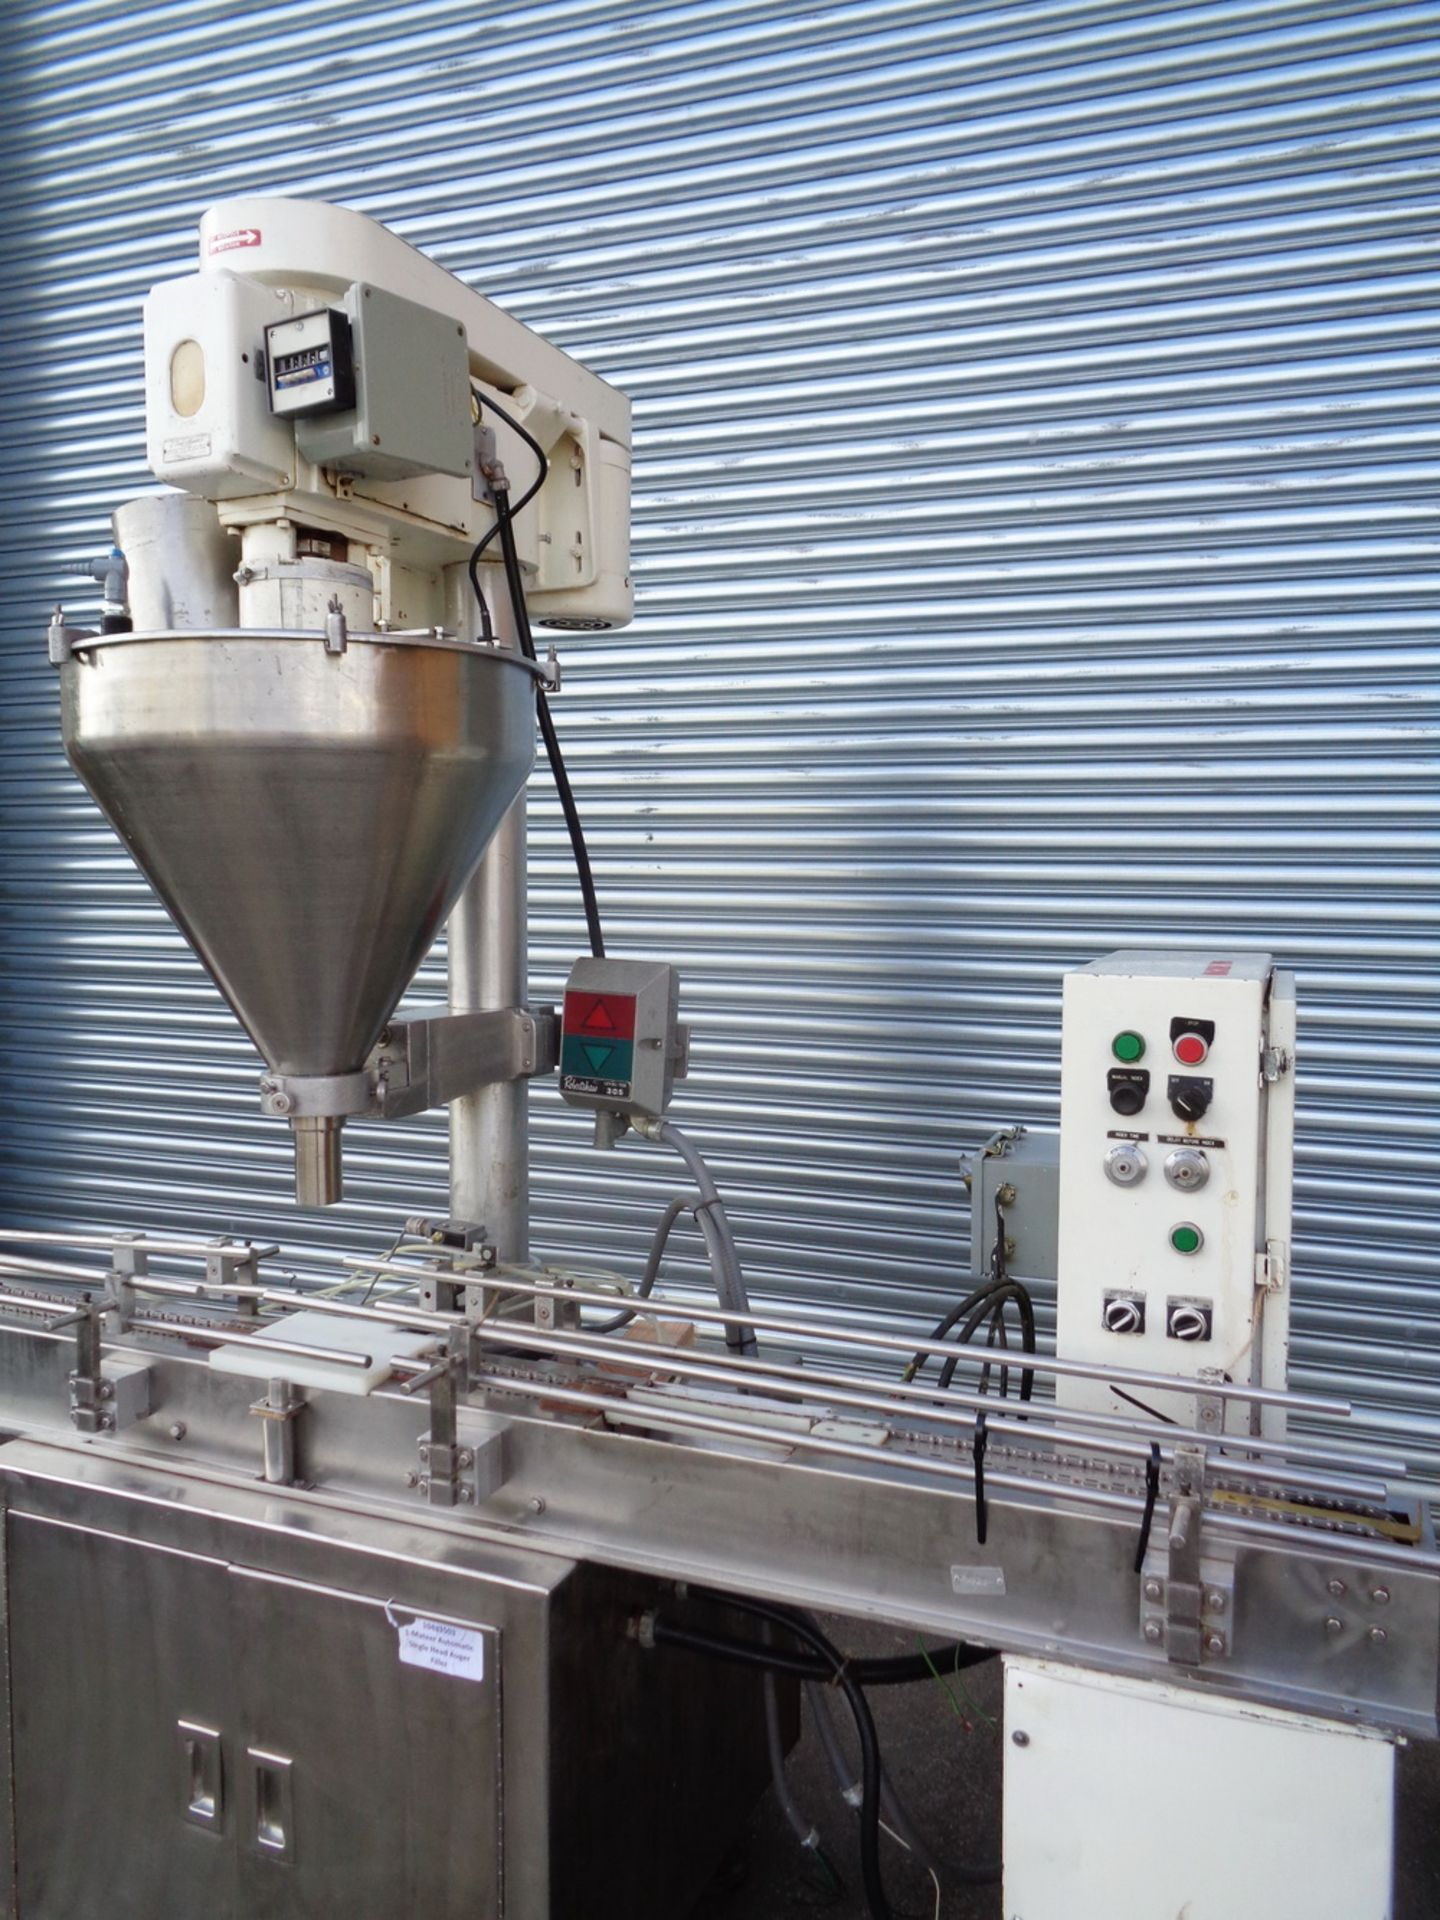 Lot 23 - Mateer Automatic Single Head Auger Filler, Model 33-A, S/N A-467